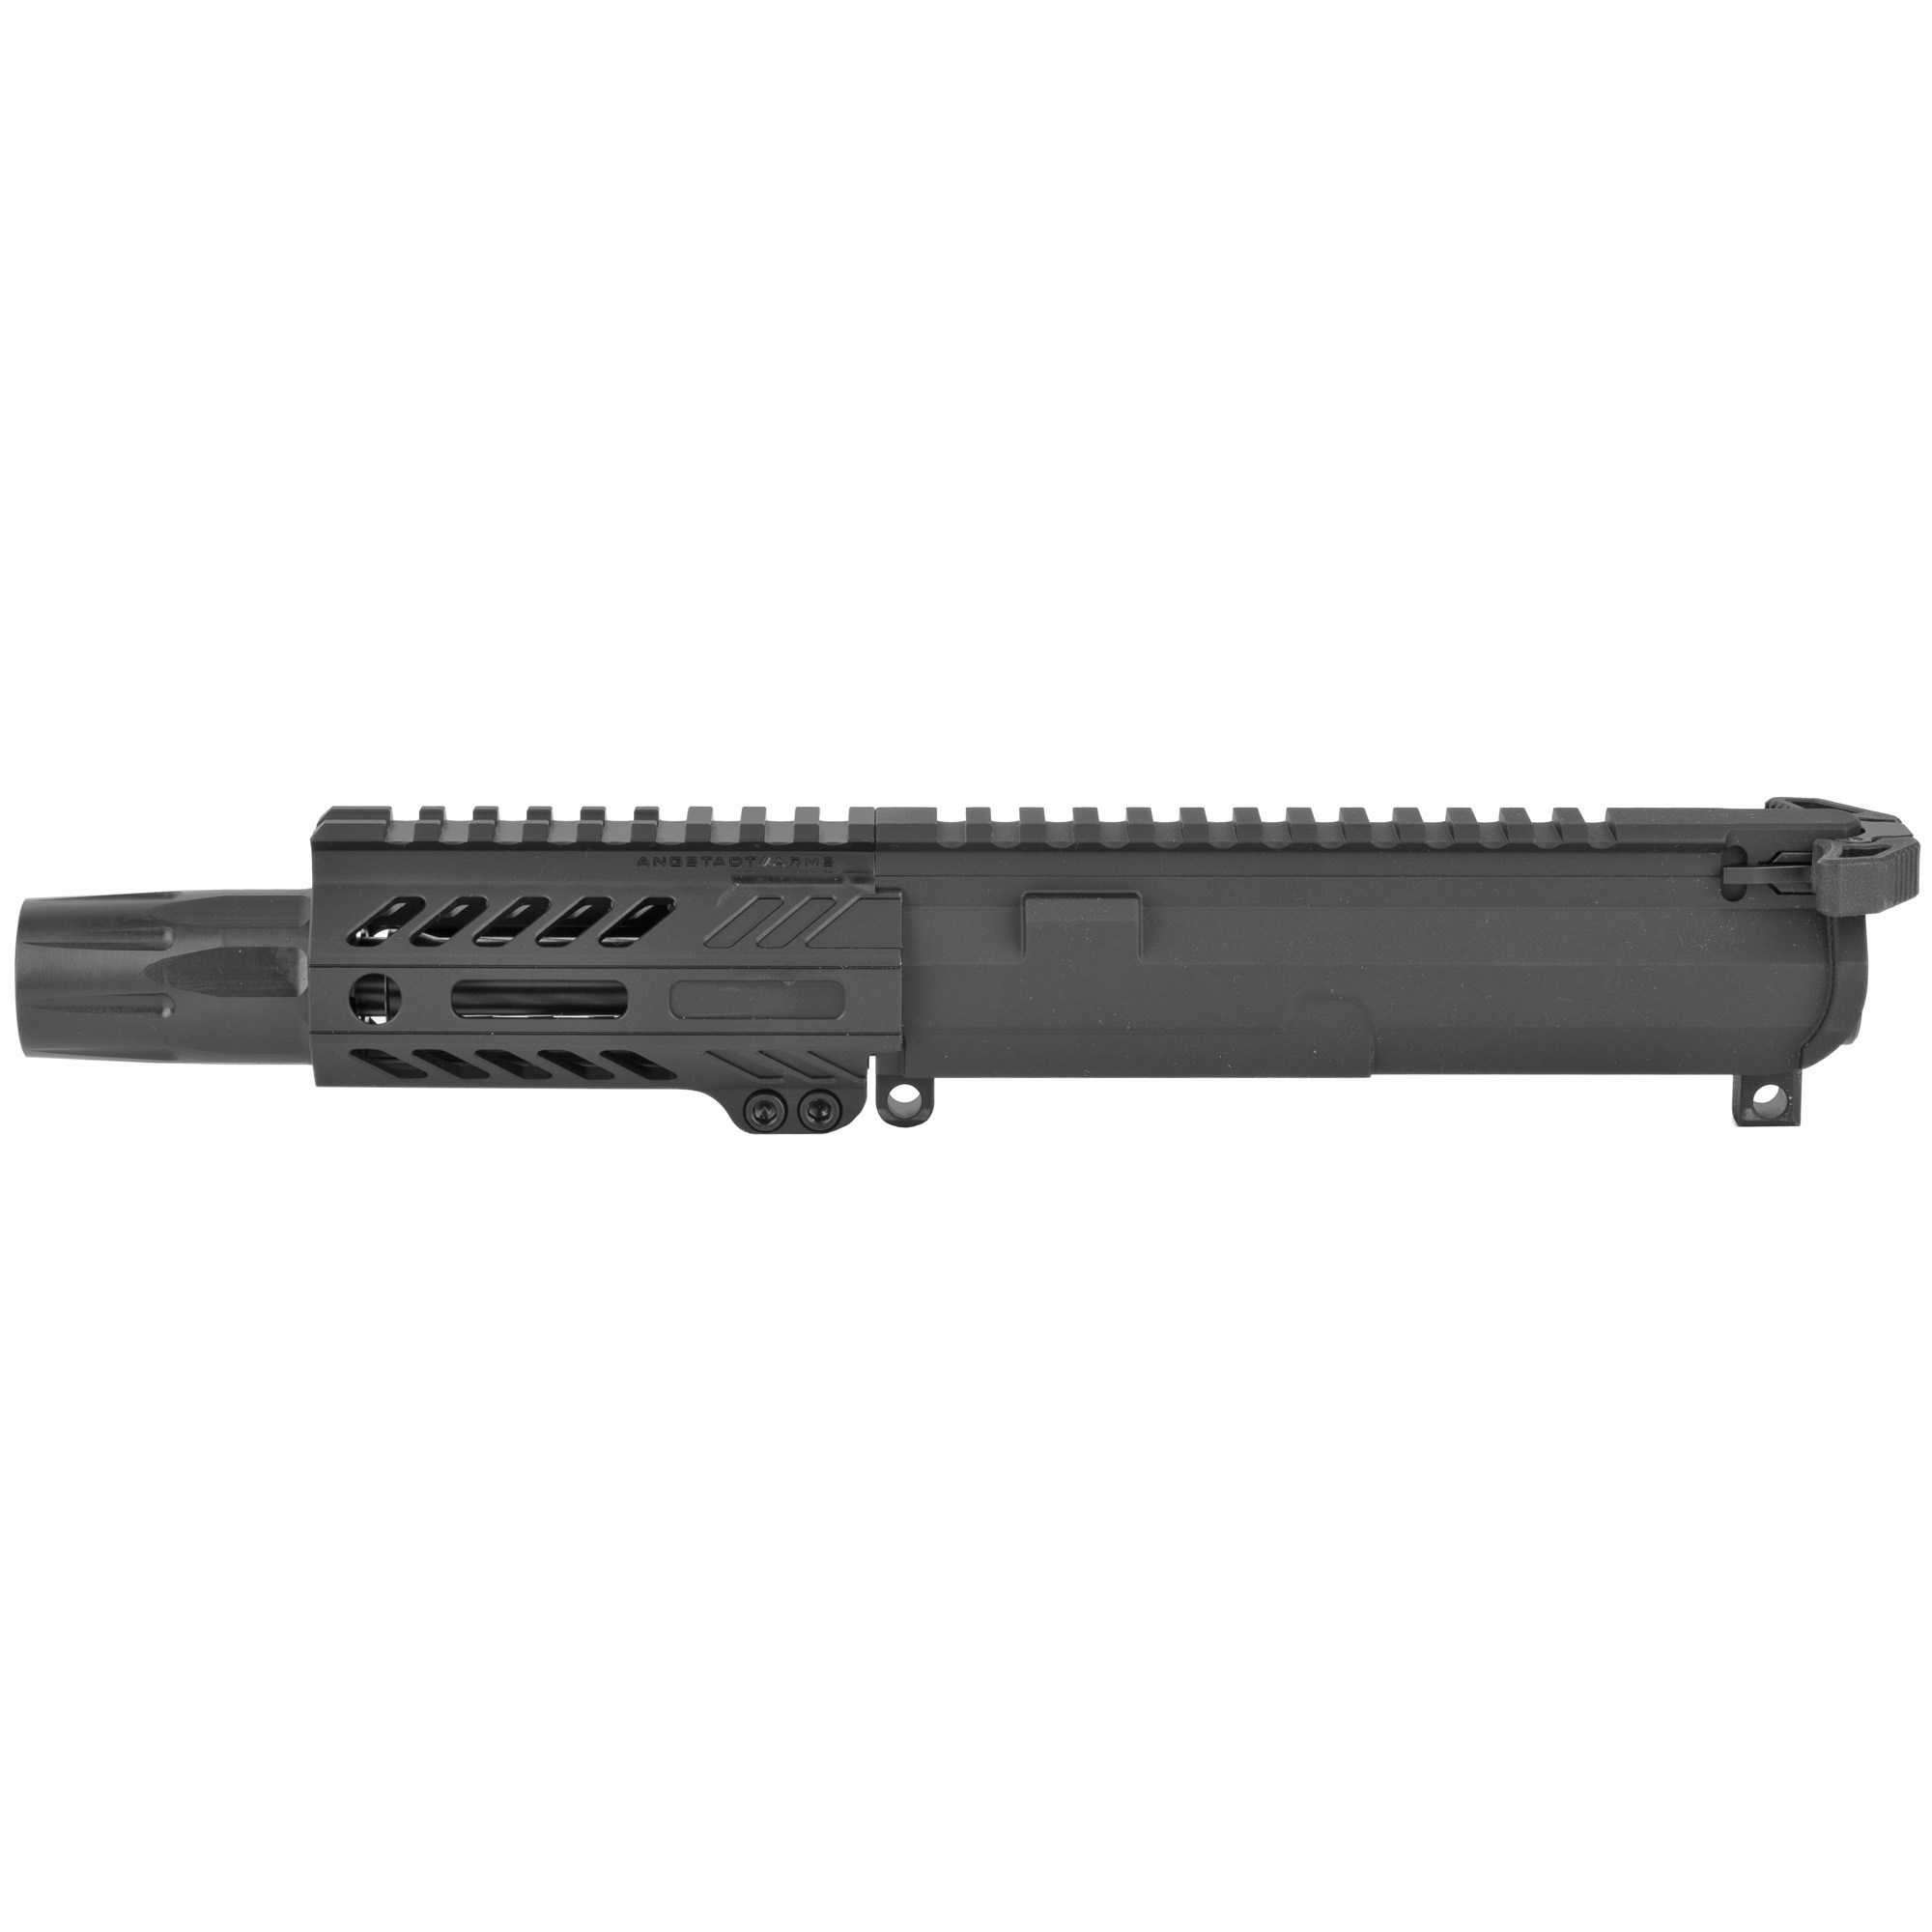 """Angstadt Arms complete upper receiver assembly is ready to run out of the box with a sound suppressor! This pistol upper features a 9mm 3-lug muzzle brake"""" Blastwave blast shield and Radian Weapons Ambidextrous charging handle. Compatible with any 9mm GLOCK(R) and COLT(R) style AR-15 lower receiver. Complete 9mm upper receiver assembly with 4.5"""" barrel"""" 4"""" ultra light hand guard and Radian ambi charging handle. Ready to run with a 9mm sound suppressor via 3-lug."""